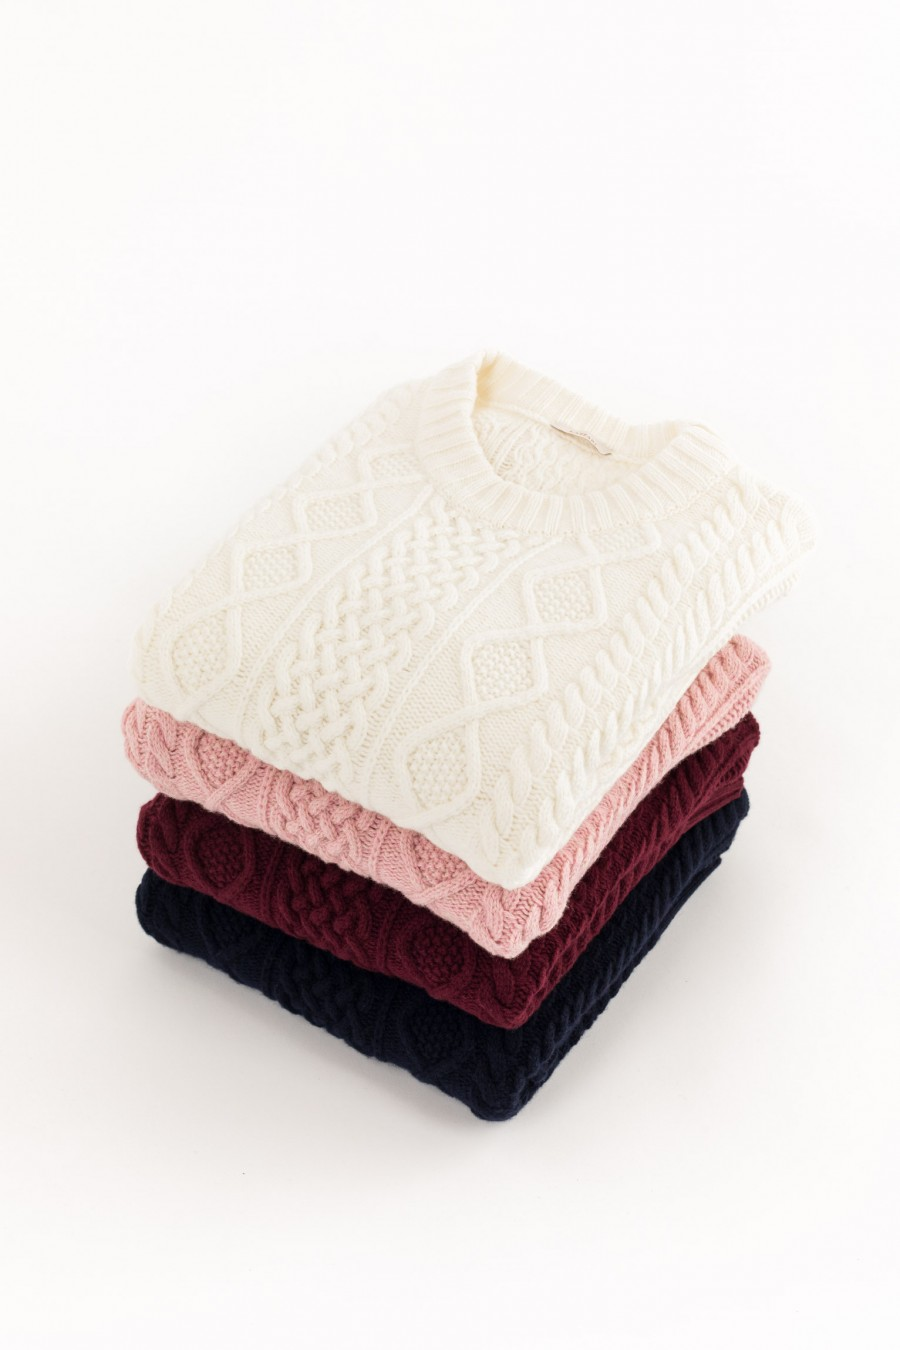 Lazzari woolen jumpers